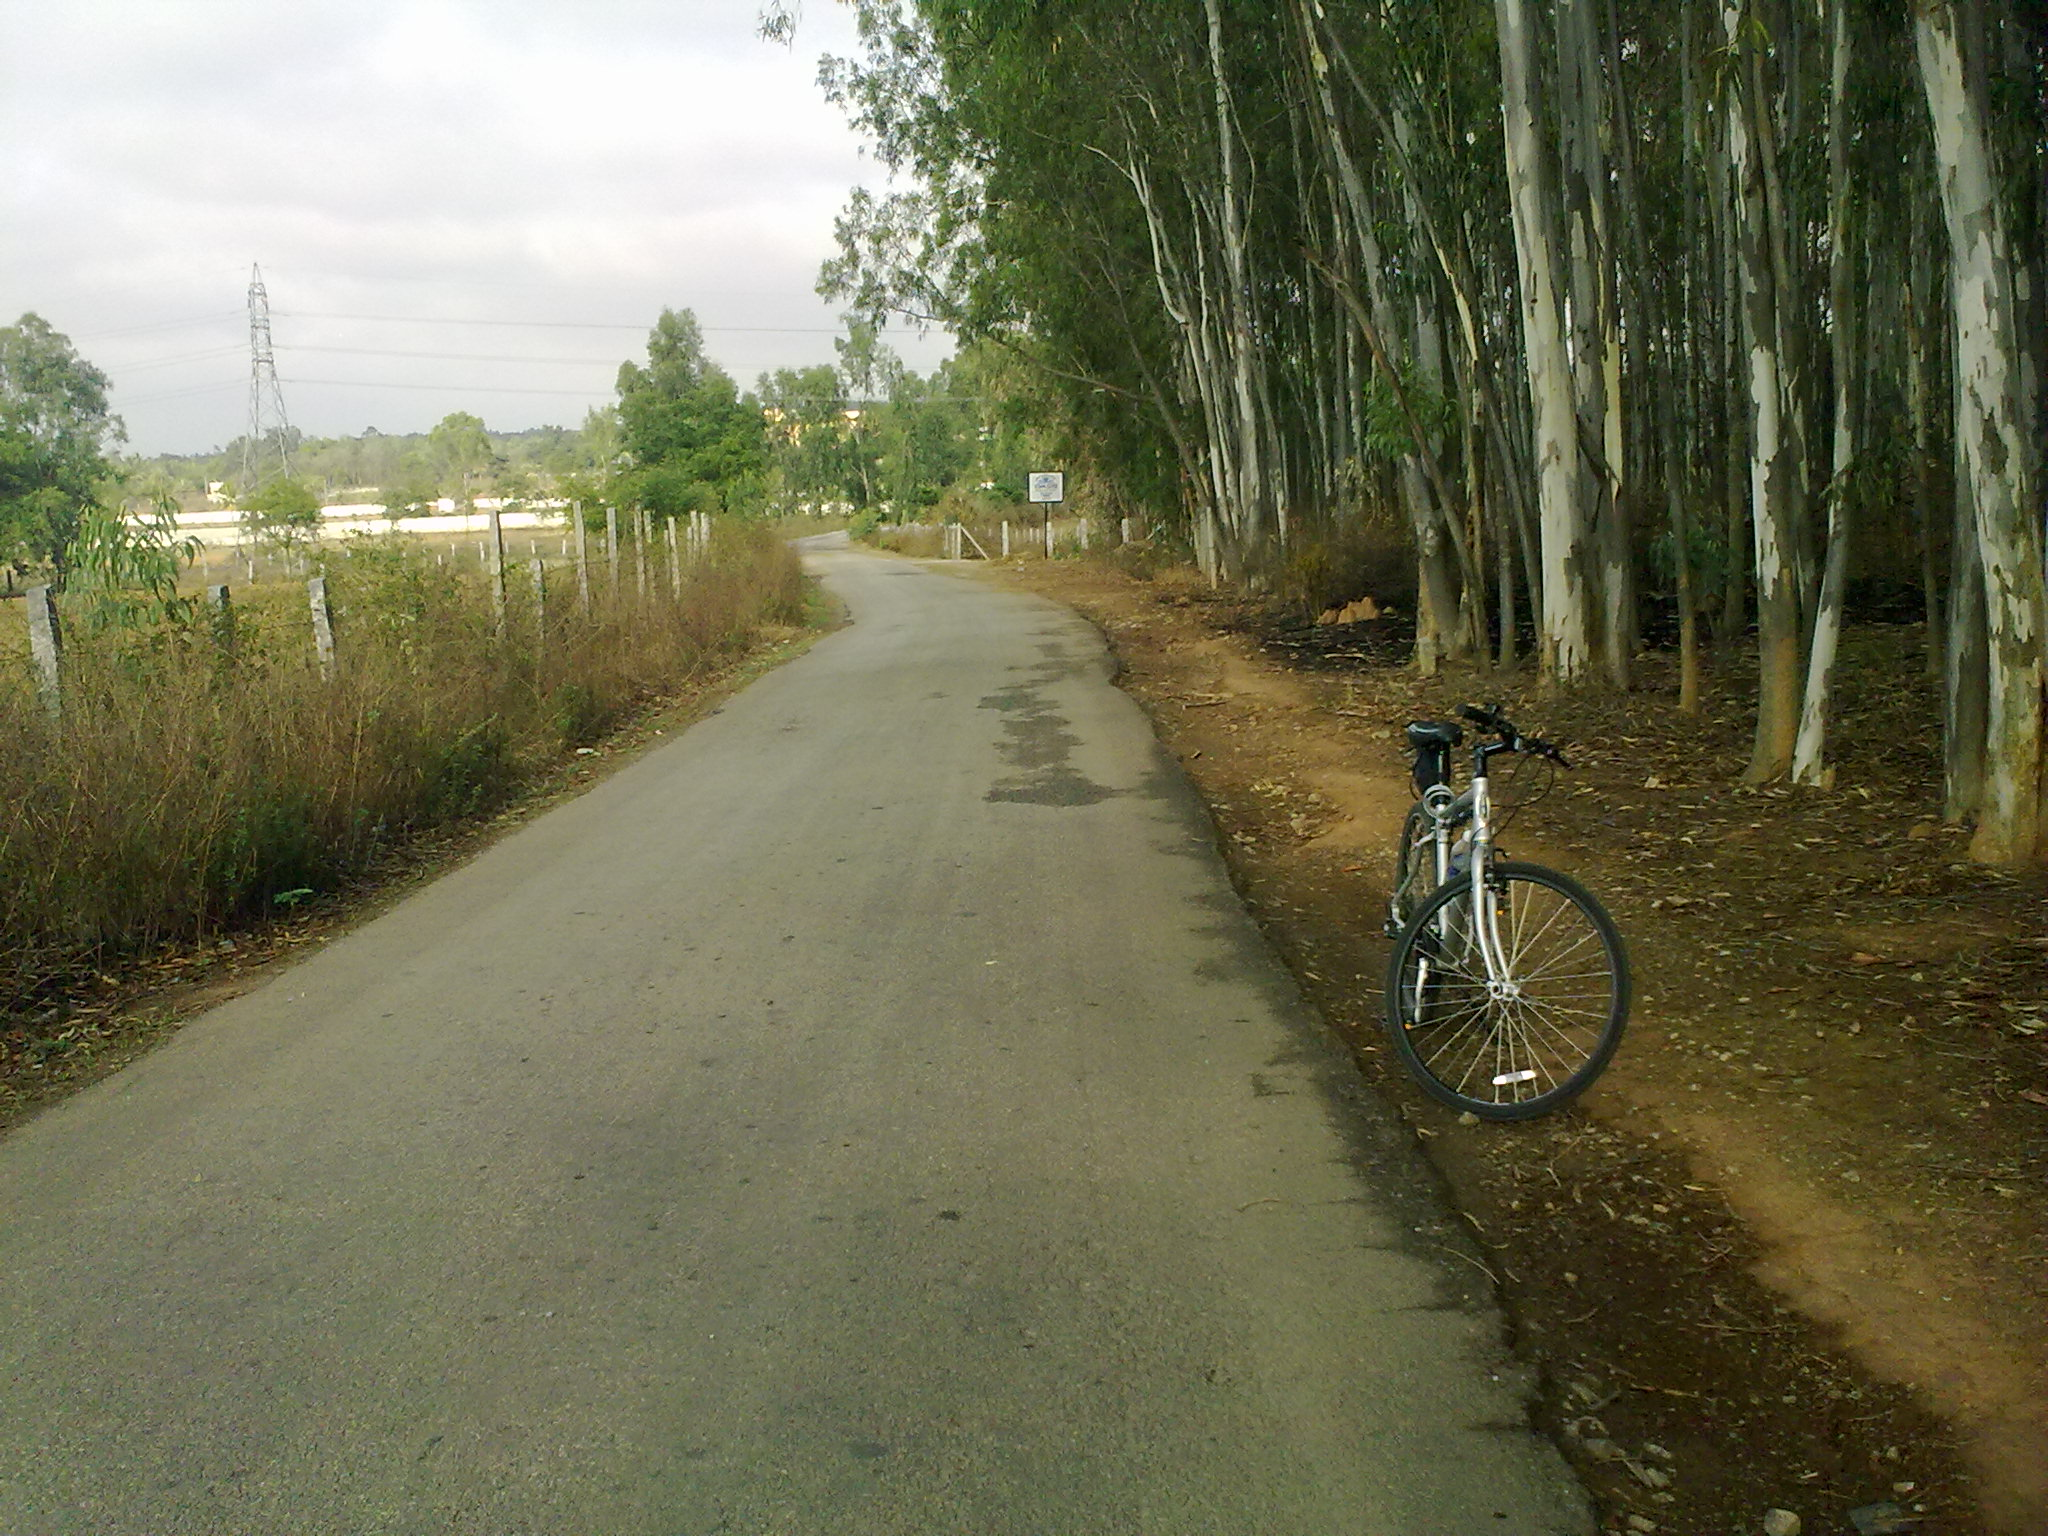 A solo ride through villages